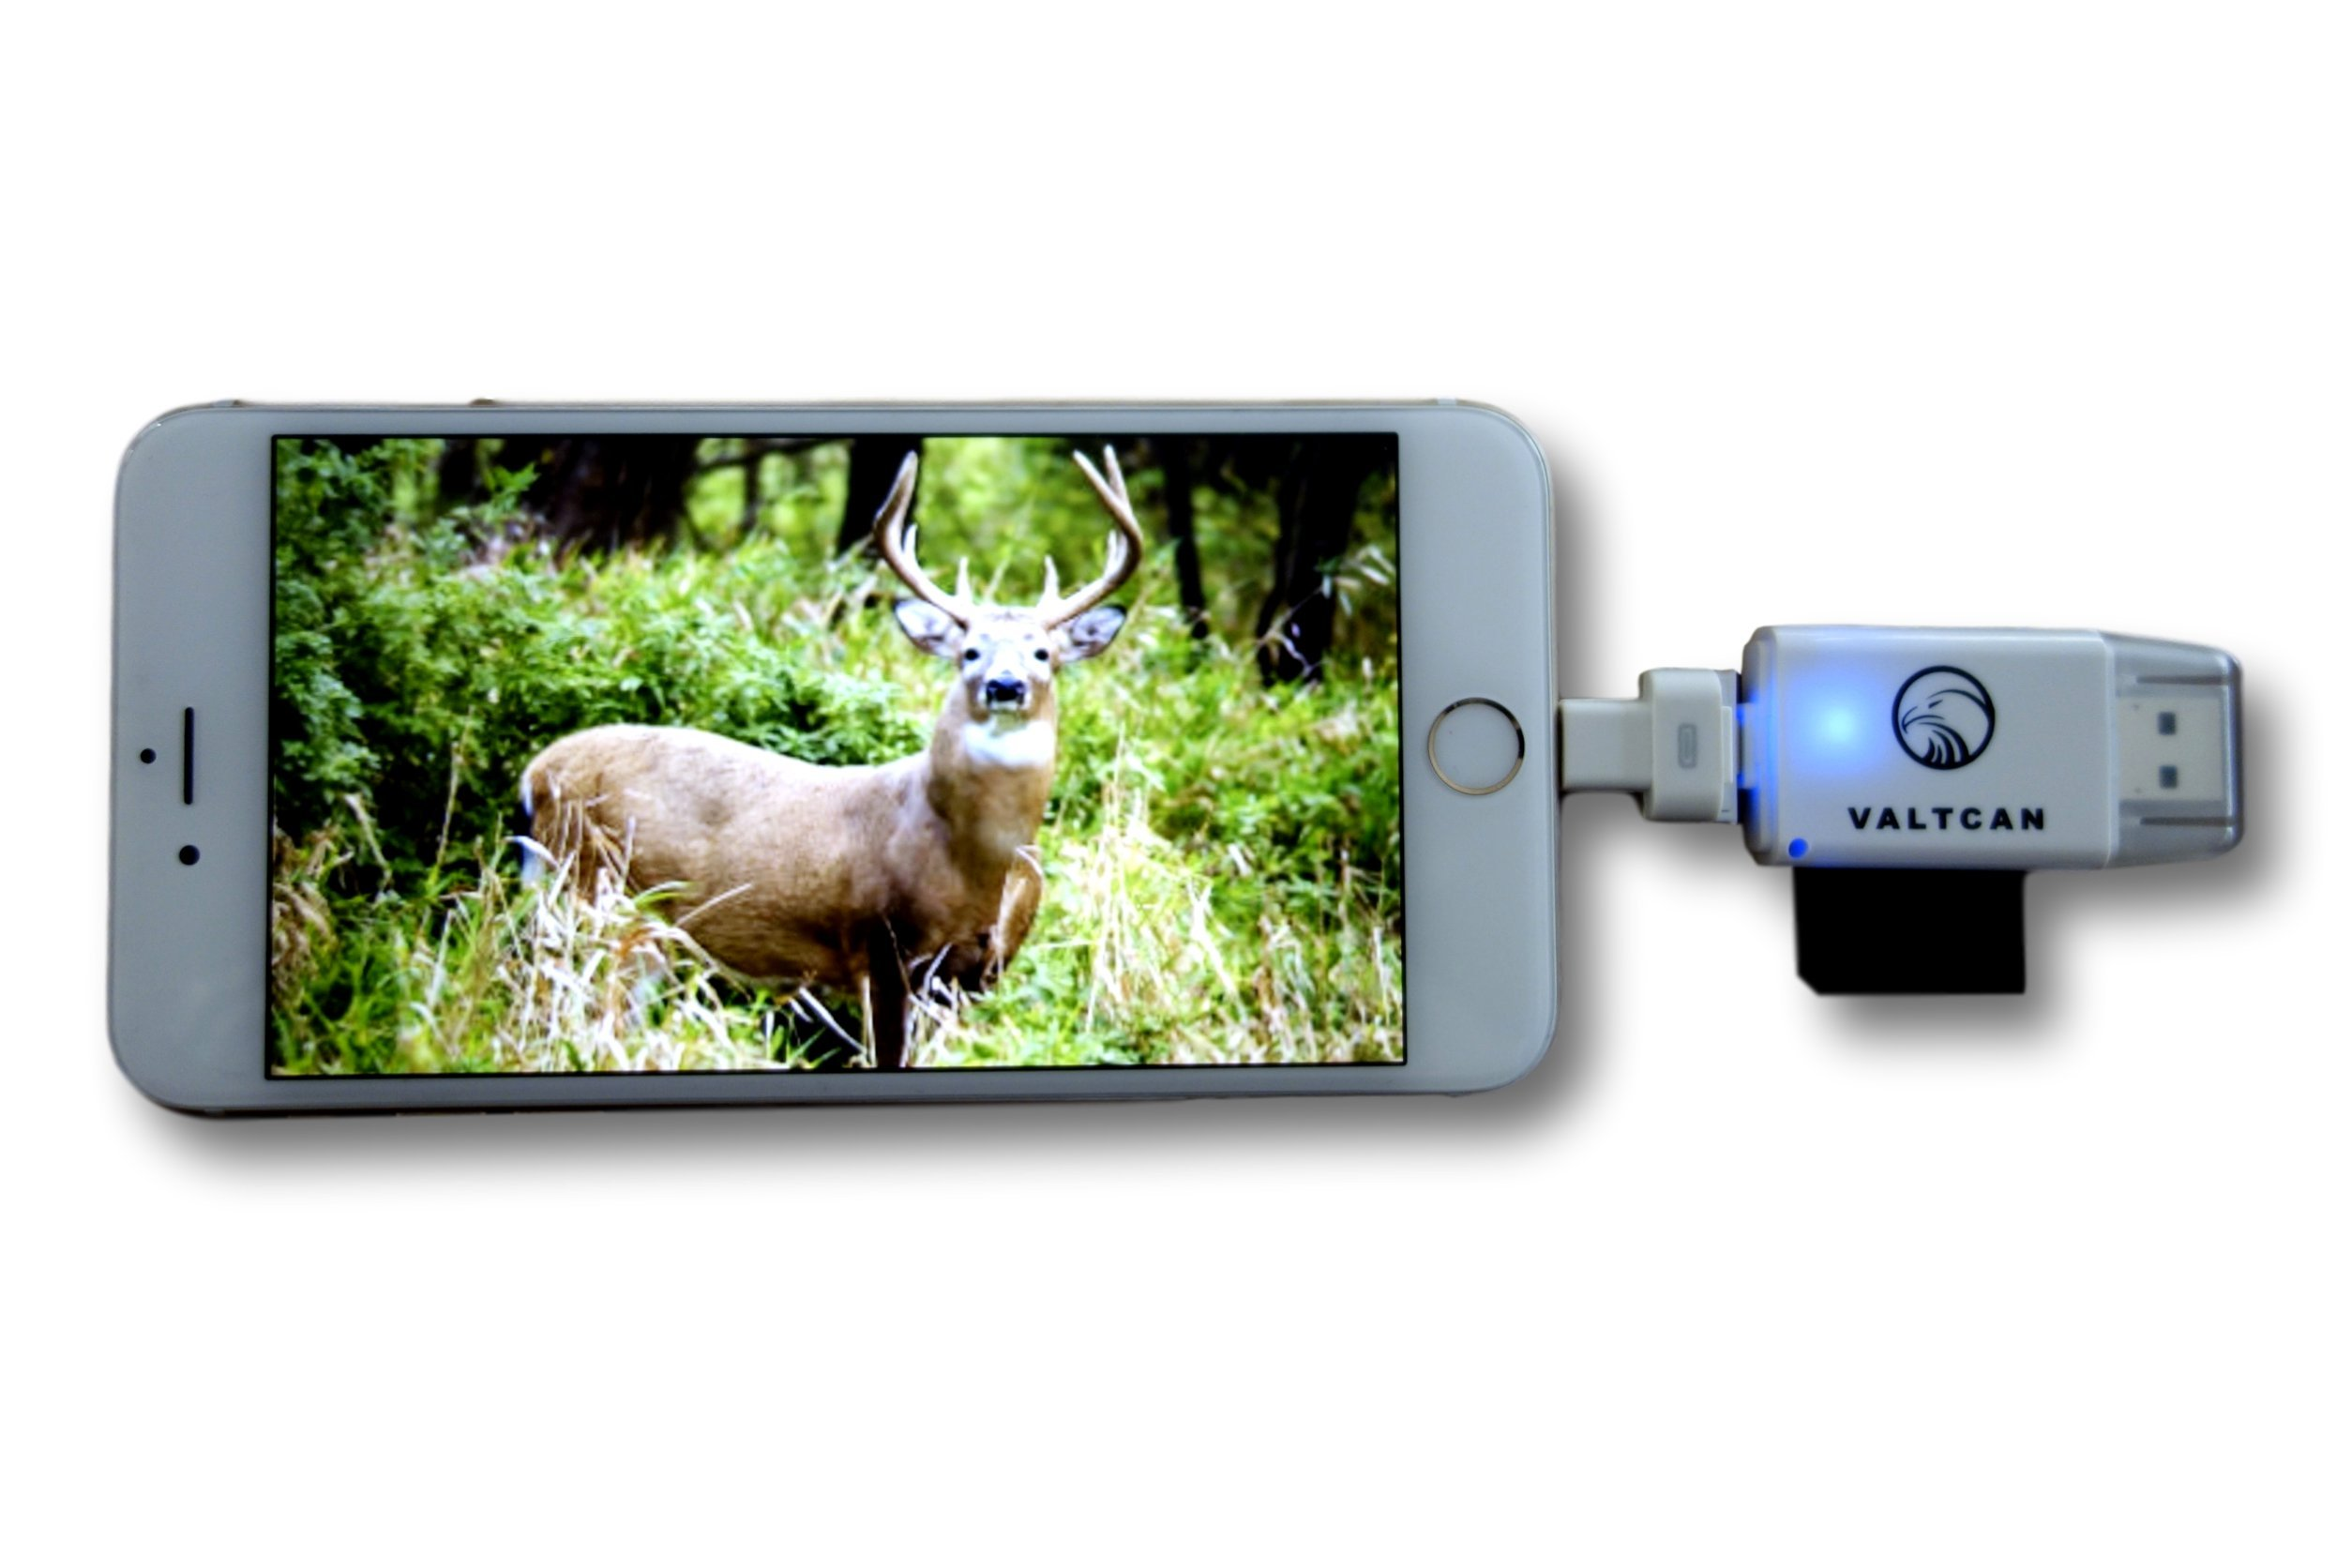 Valtcan Trail Camera Viewer for Apple iPhone & iPad, View Photos and Videos on Smartphone Instantly